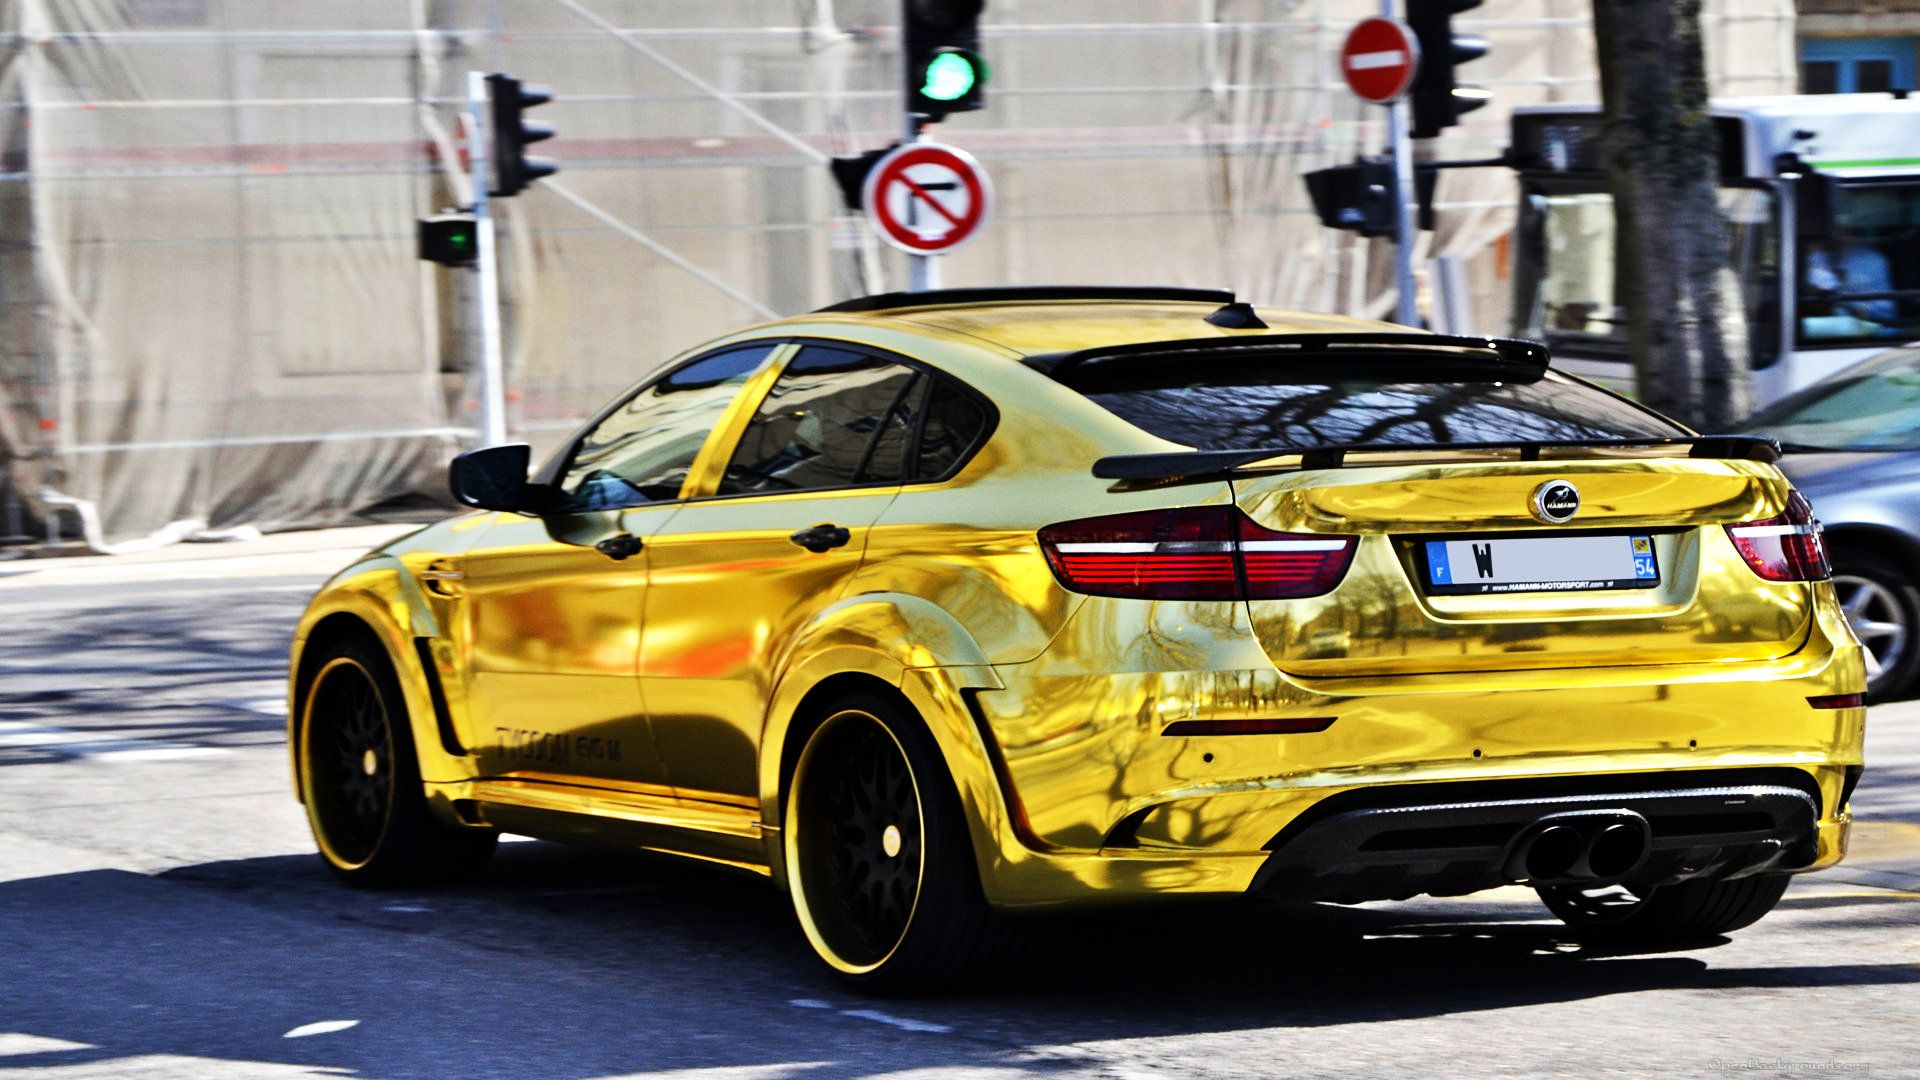 Gold Car Wallpapers: Gold BMW X6M Custom Hamann Supreme Edition #1